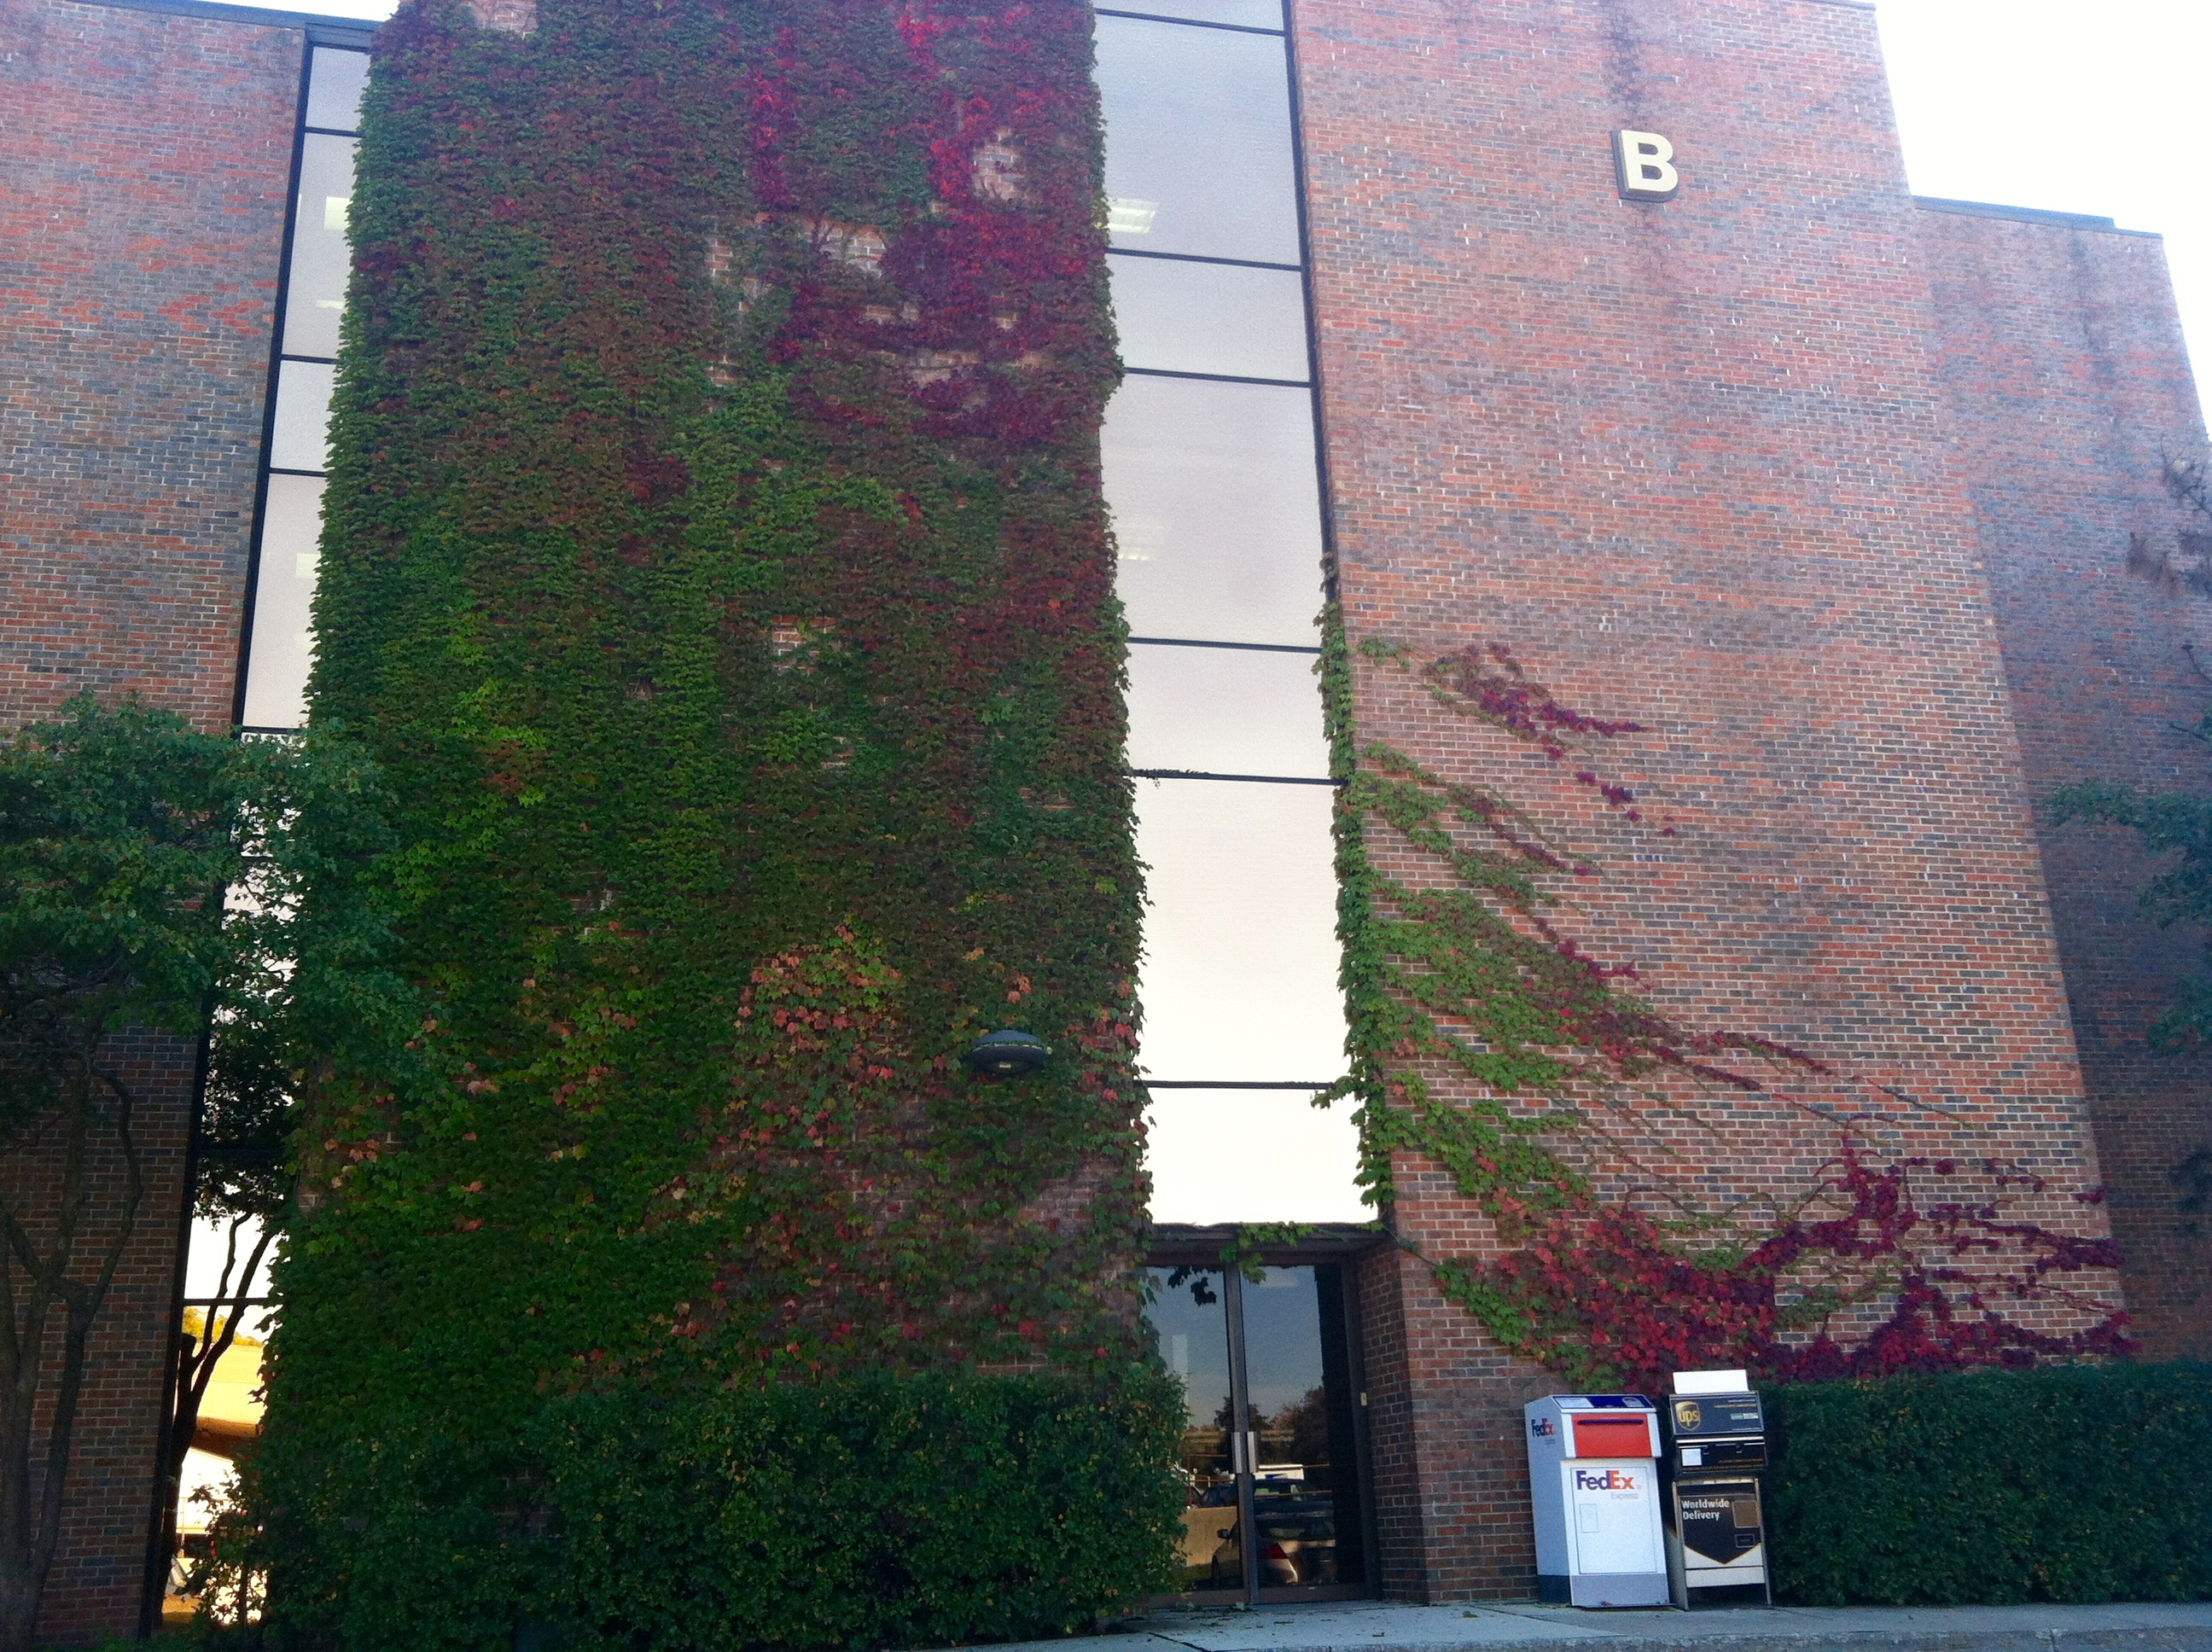 North entrance to our office in Building B 60137